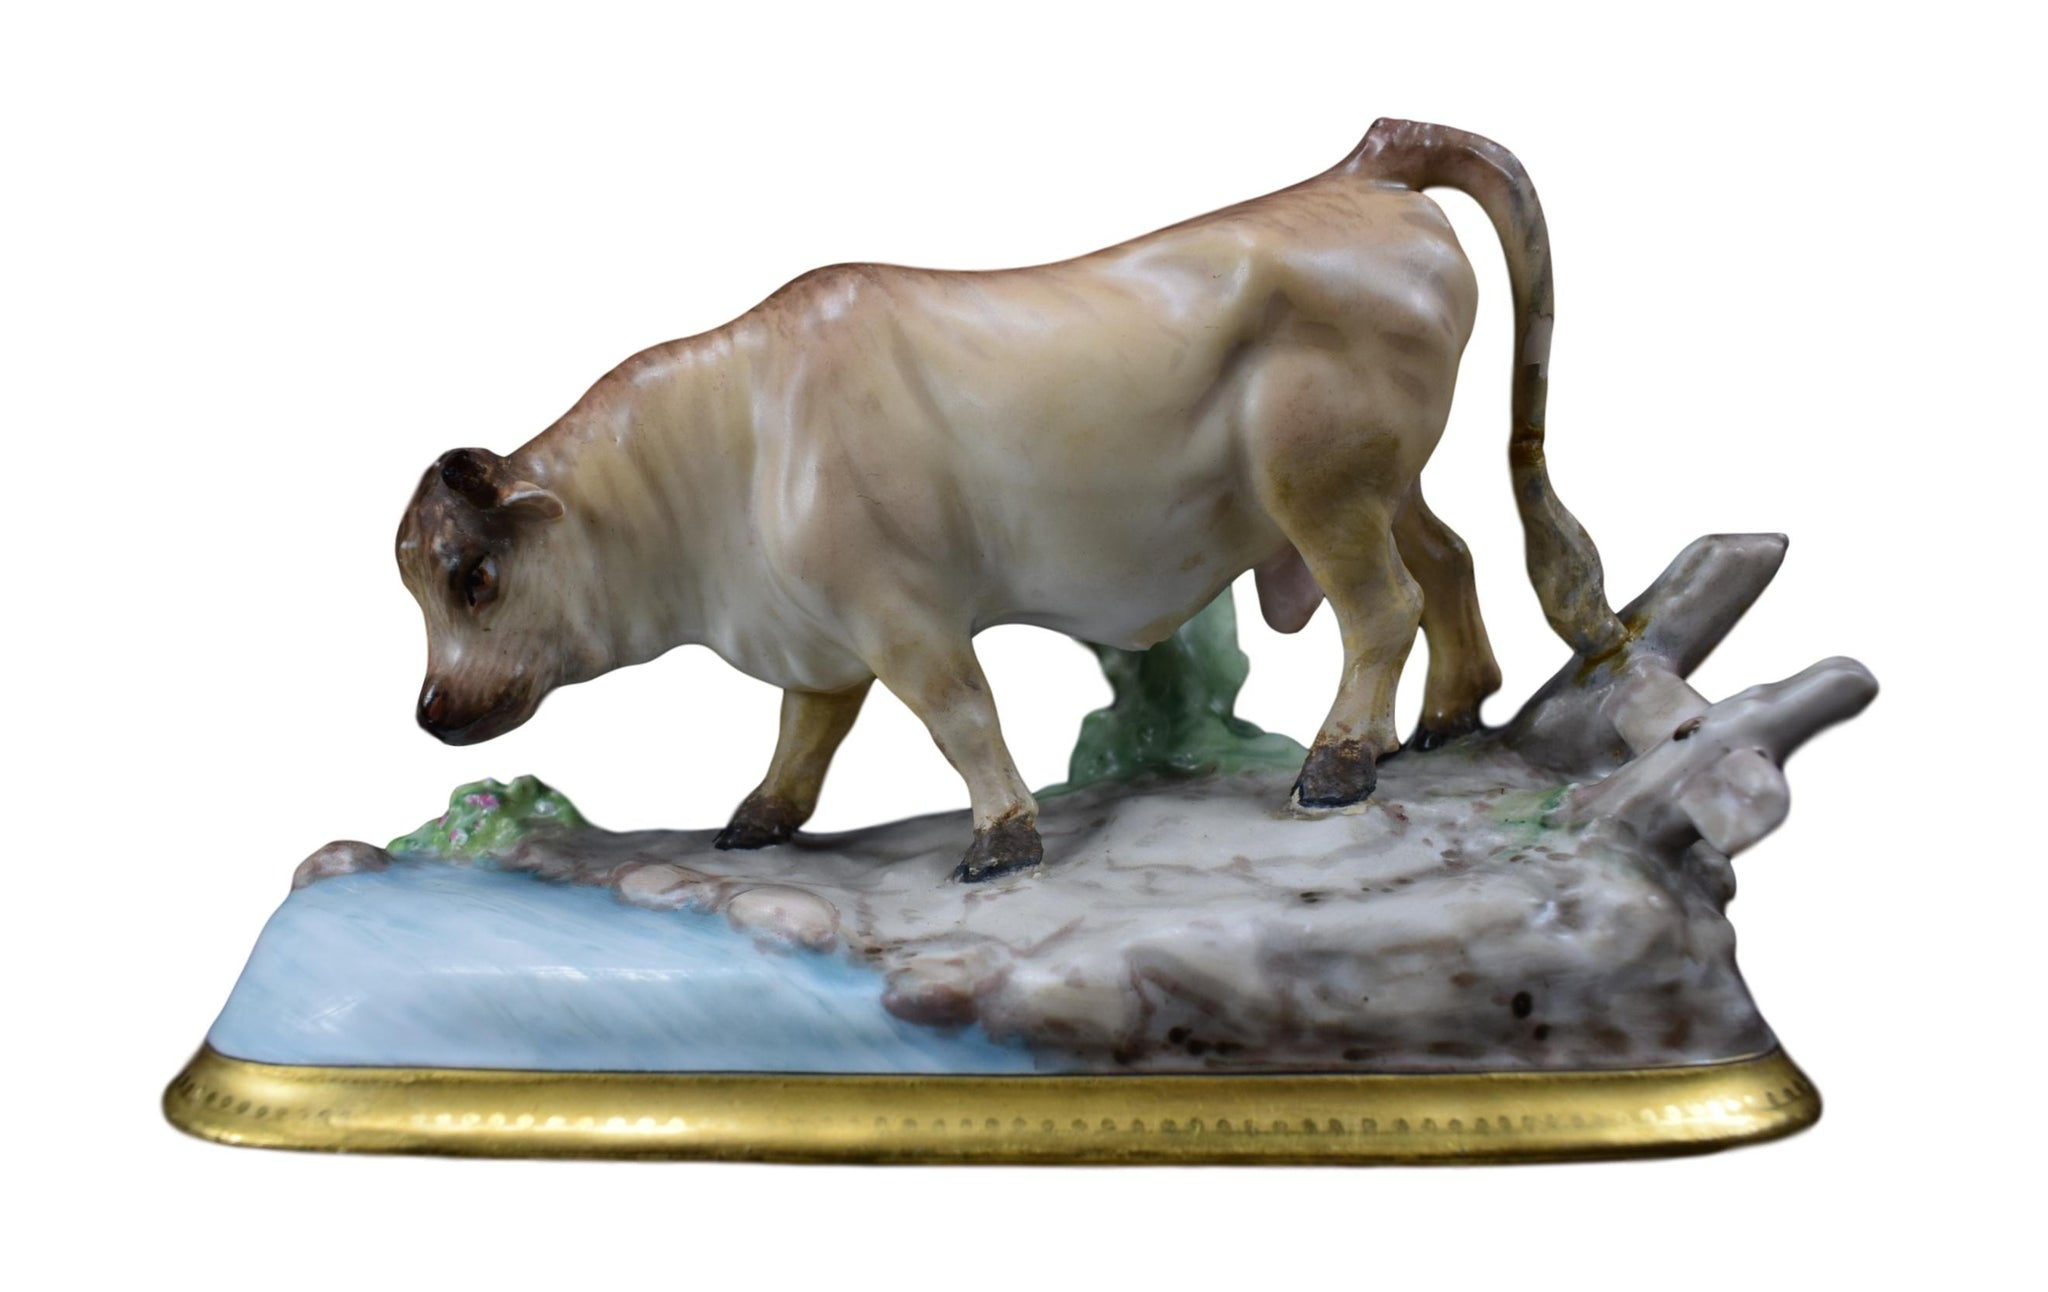 Henri Ardant & Cie Porcelain Bull Figurine, Rare Limoges Porcelain Statue, 19th.C French Antique China Bull Cow